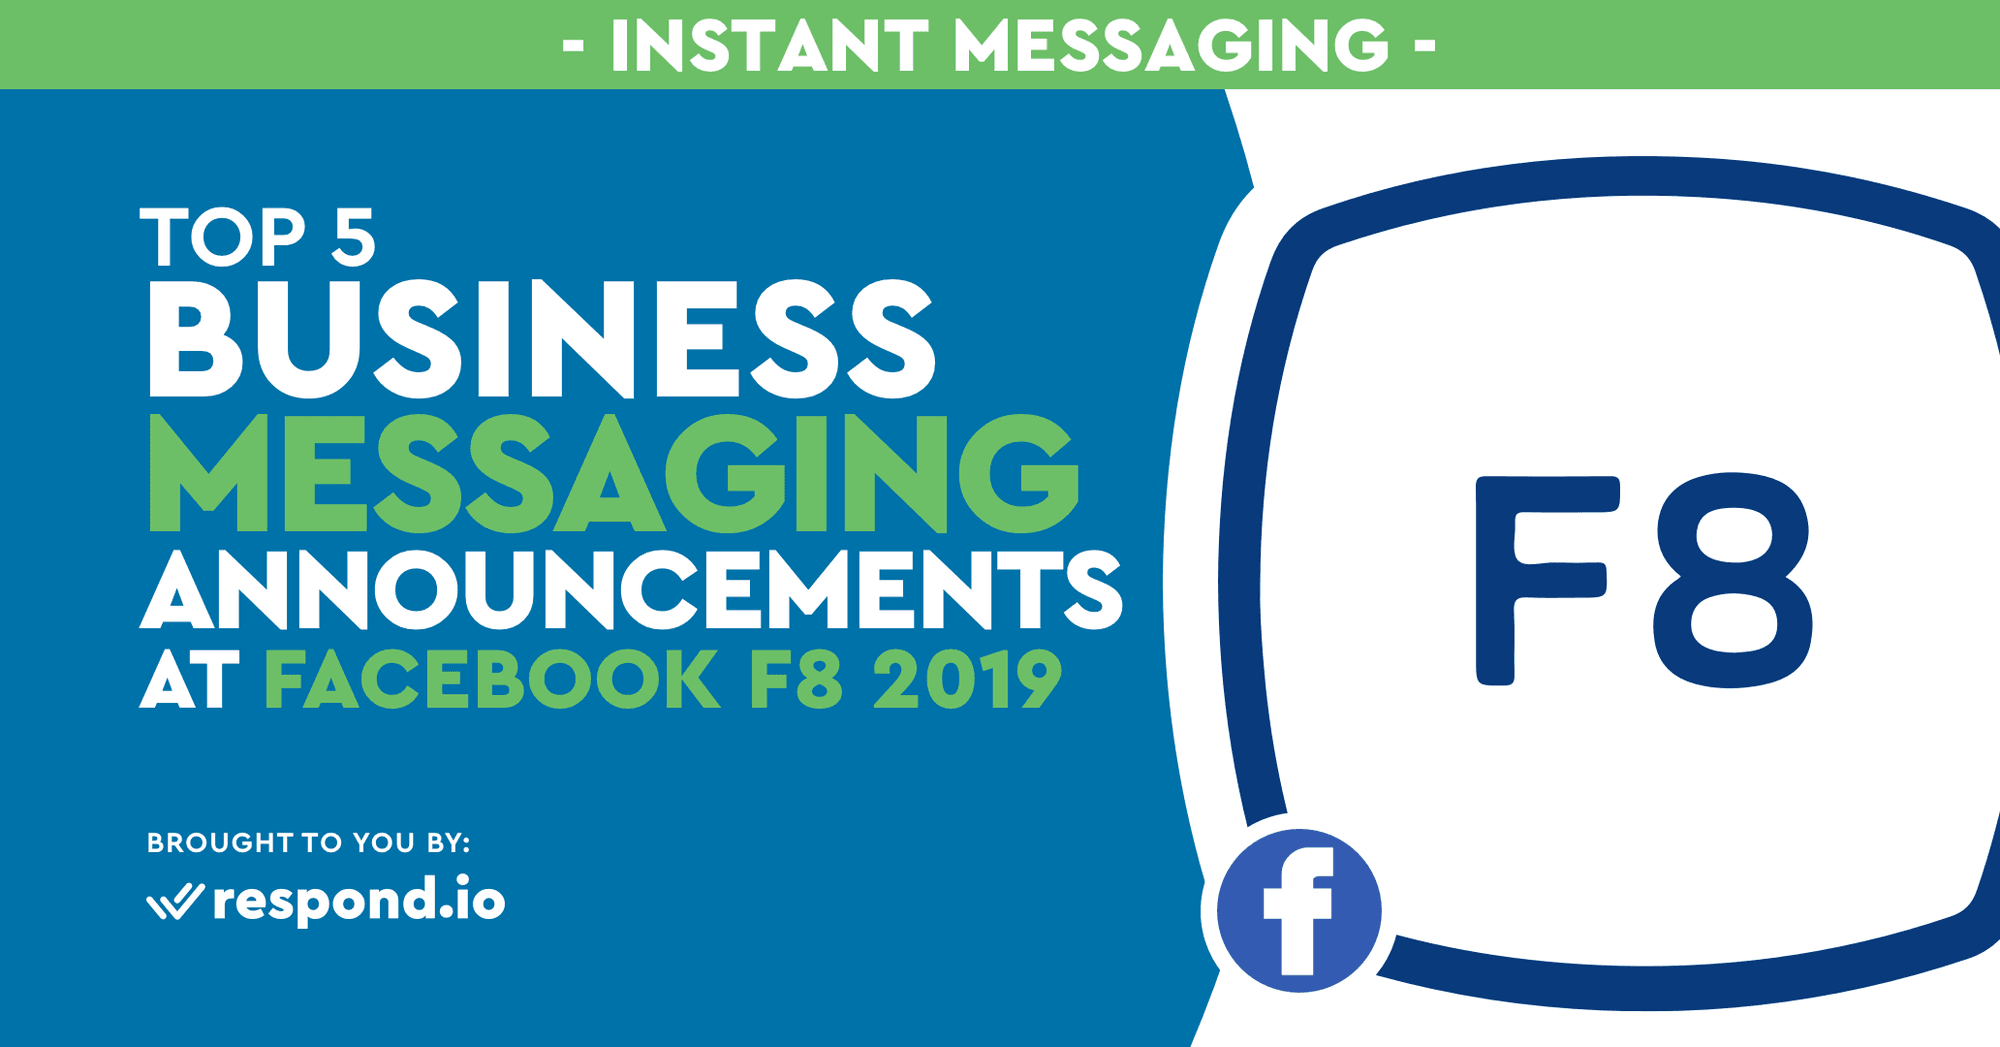 Top 5 Business Messaging Announcements at Facebook F8 2019